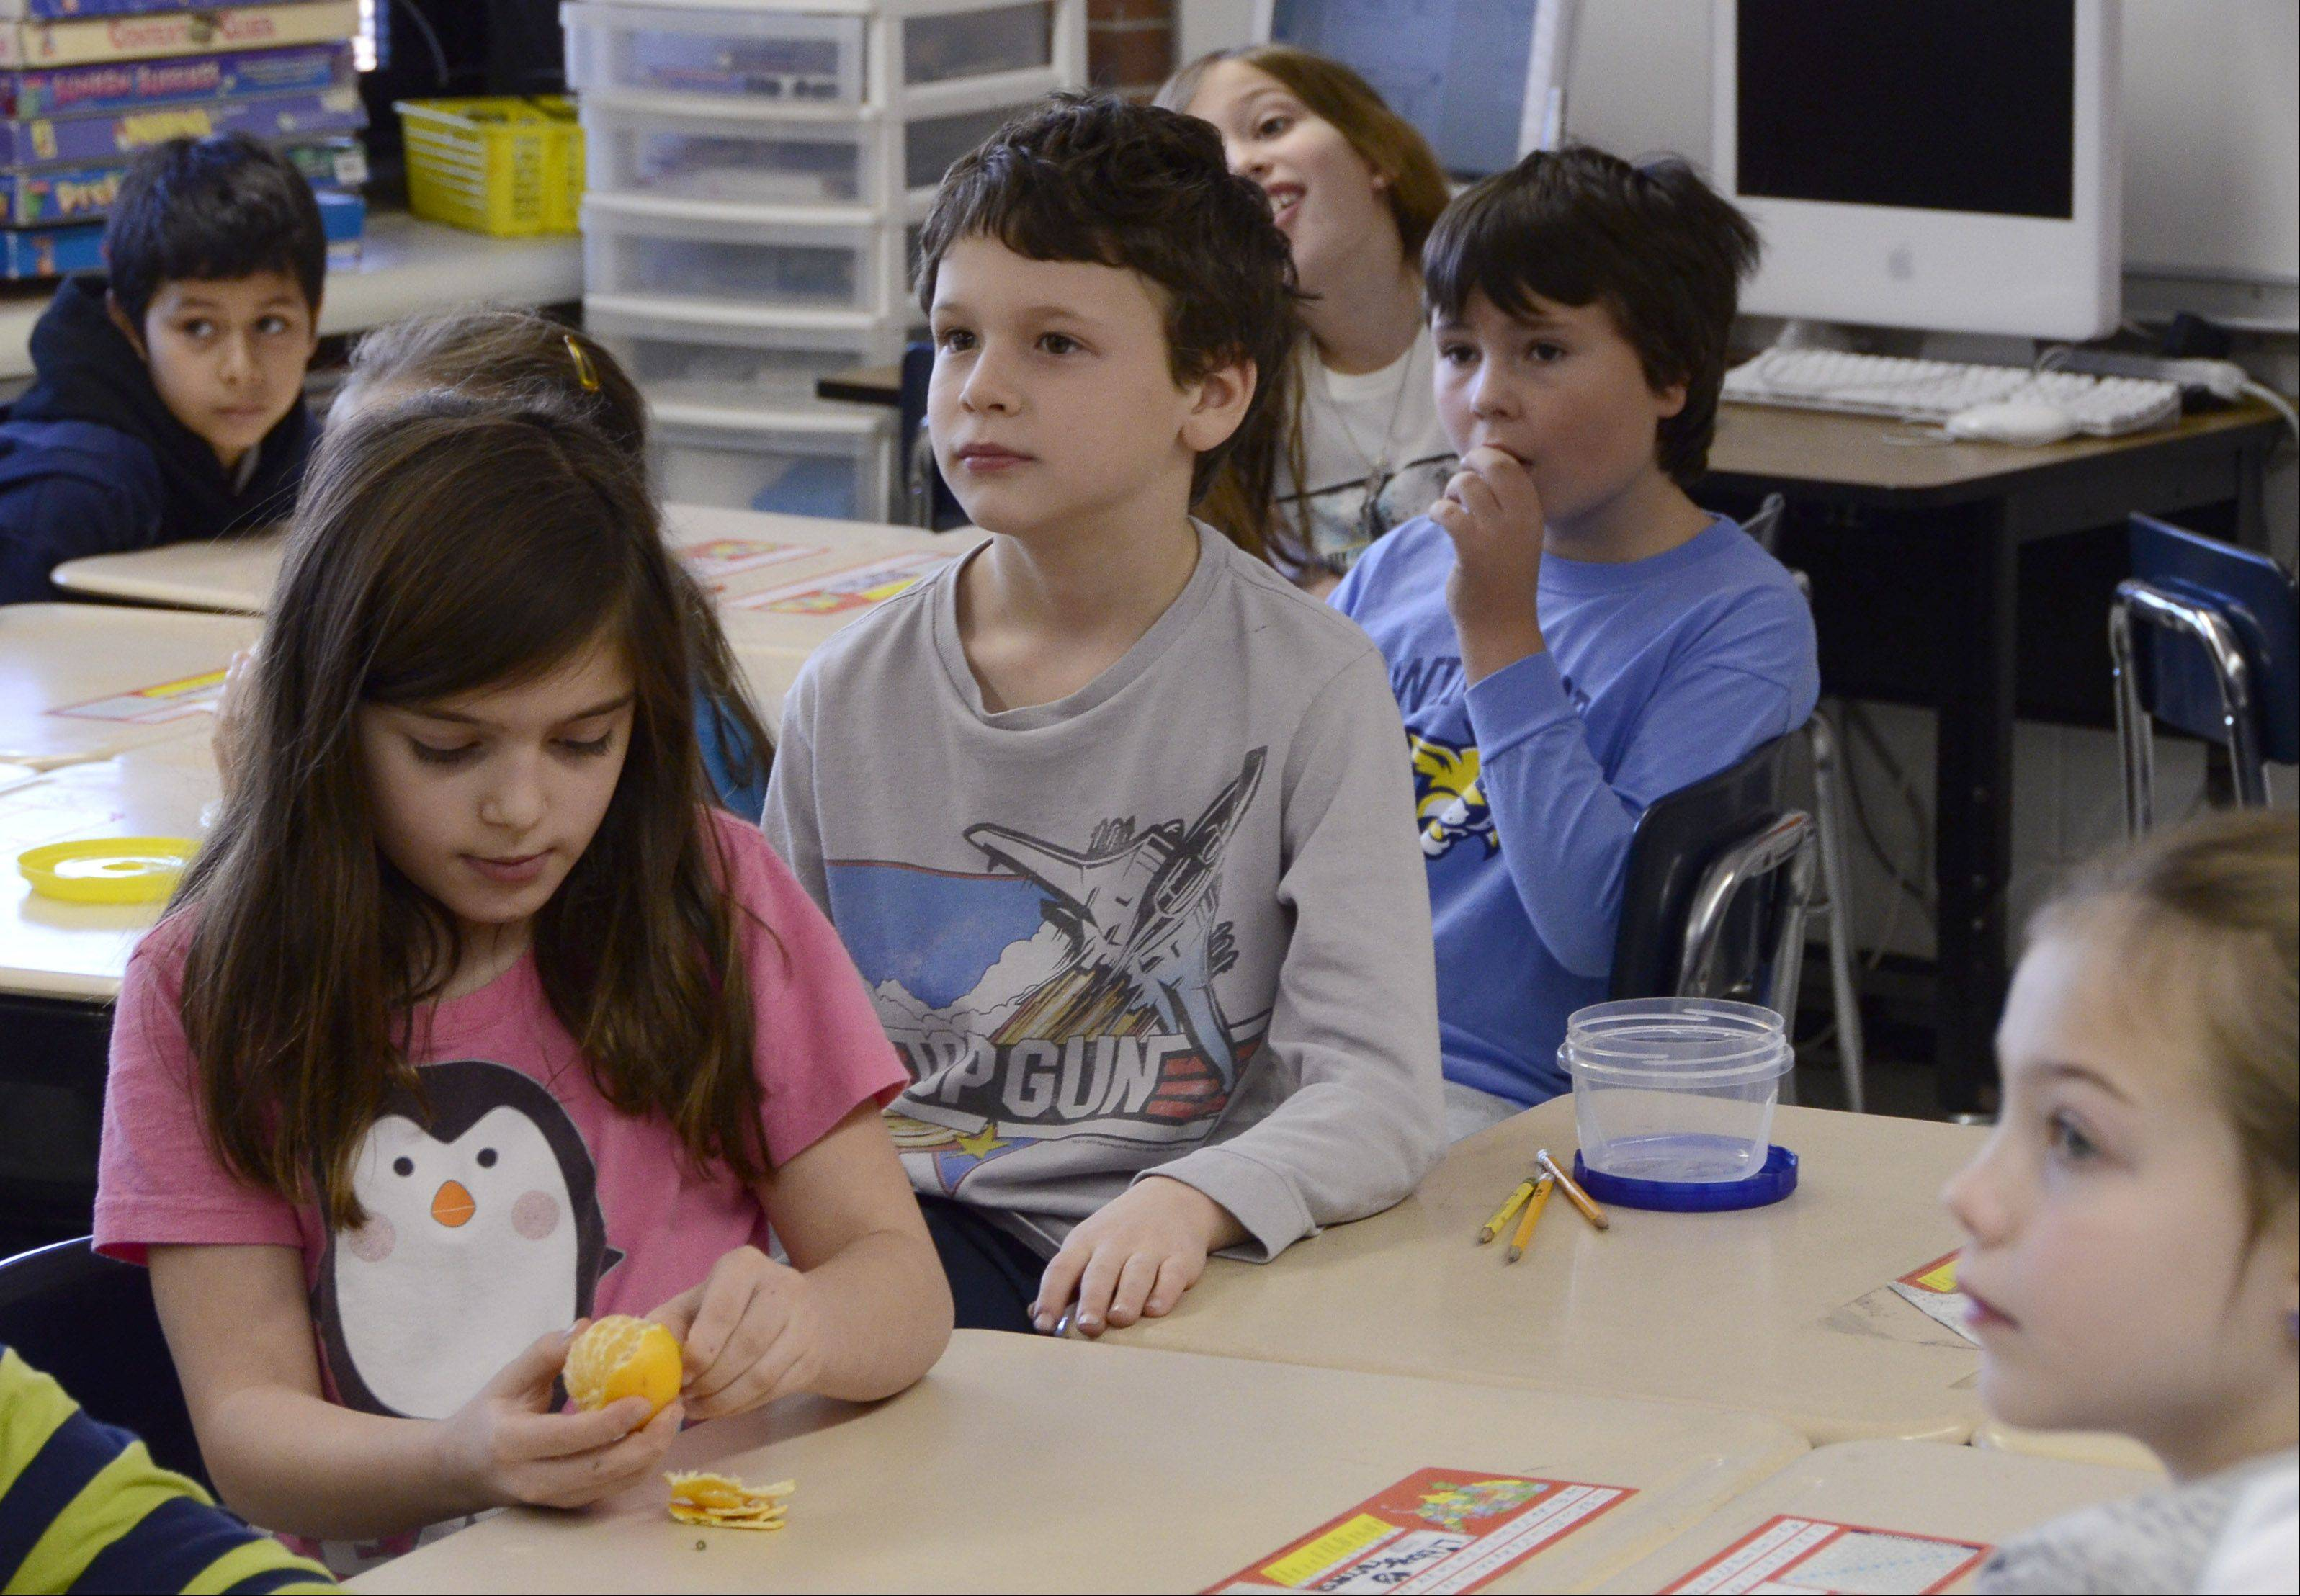 Students at Windsor Elementary School in Arlington Heights are allowed to eat healthy snacks during midmorning classes.